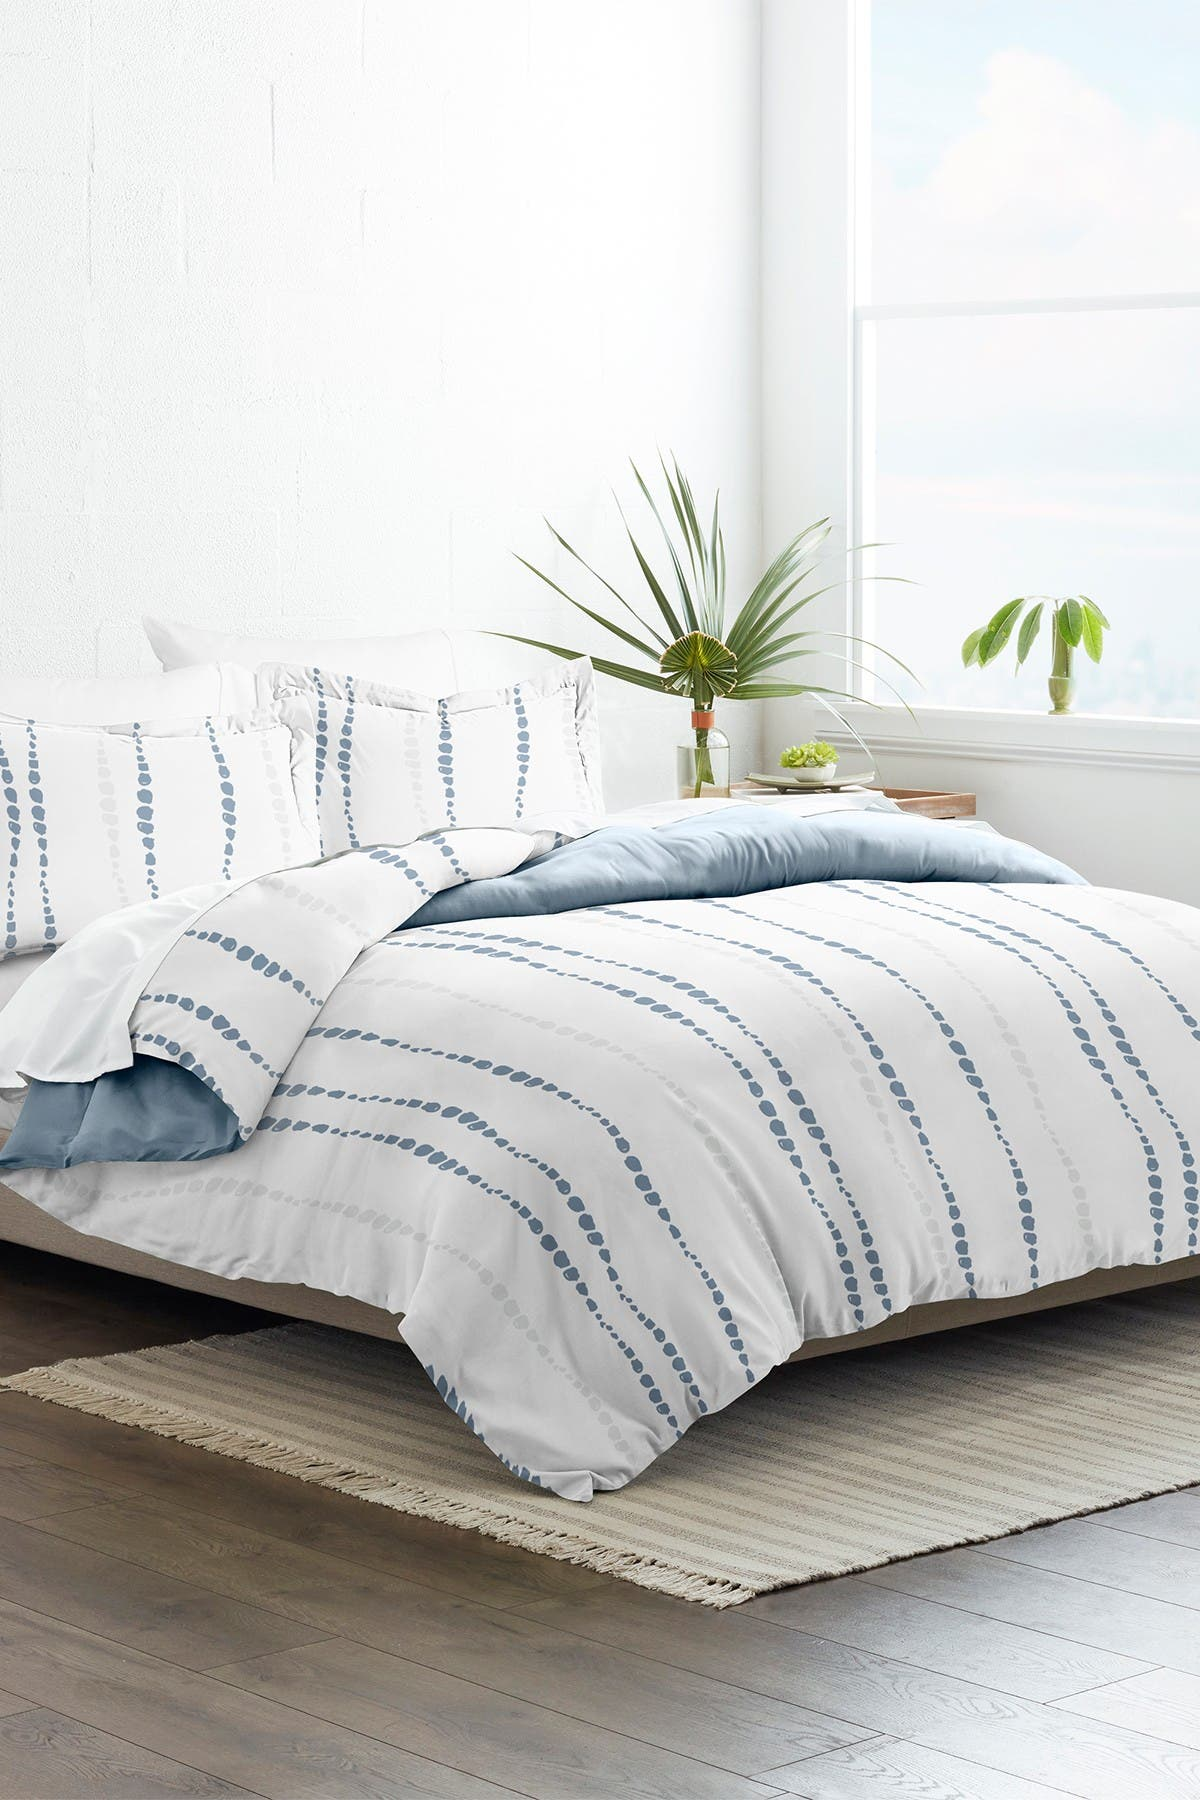 Image of IENJOY HOME Home Collection Premium Ultra Soft Urban Vibe Pattern 3-Piece Full/Queen Reversible Duvet Cover Set - Navy